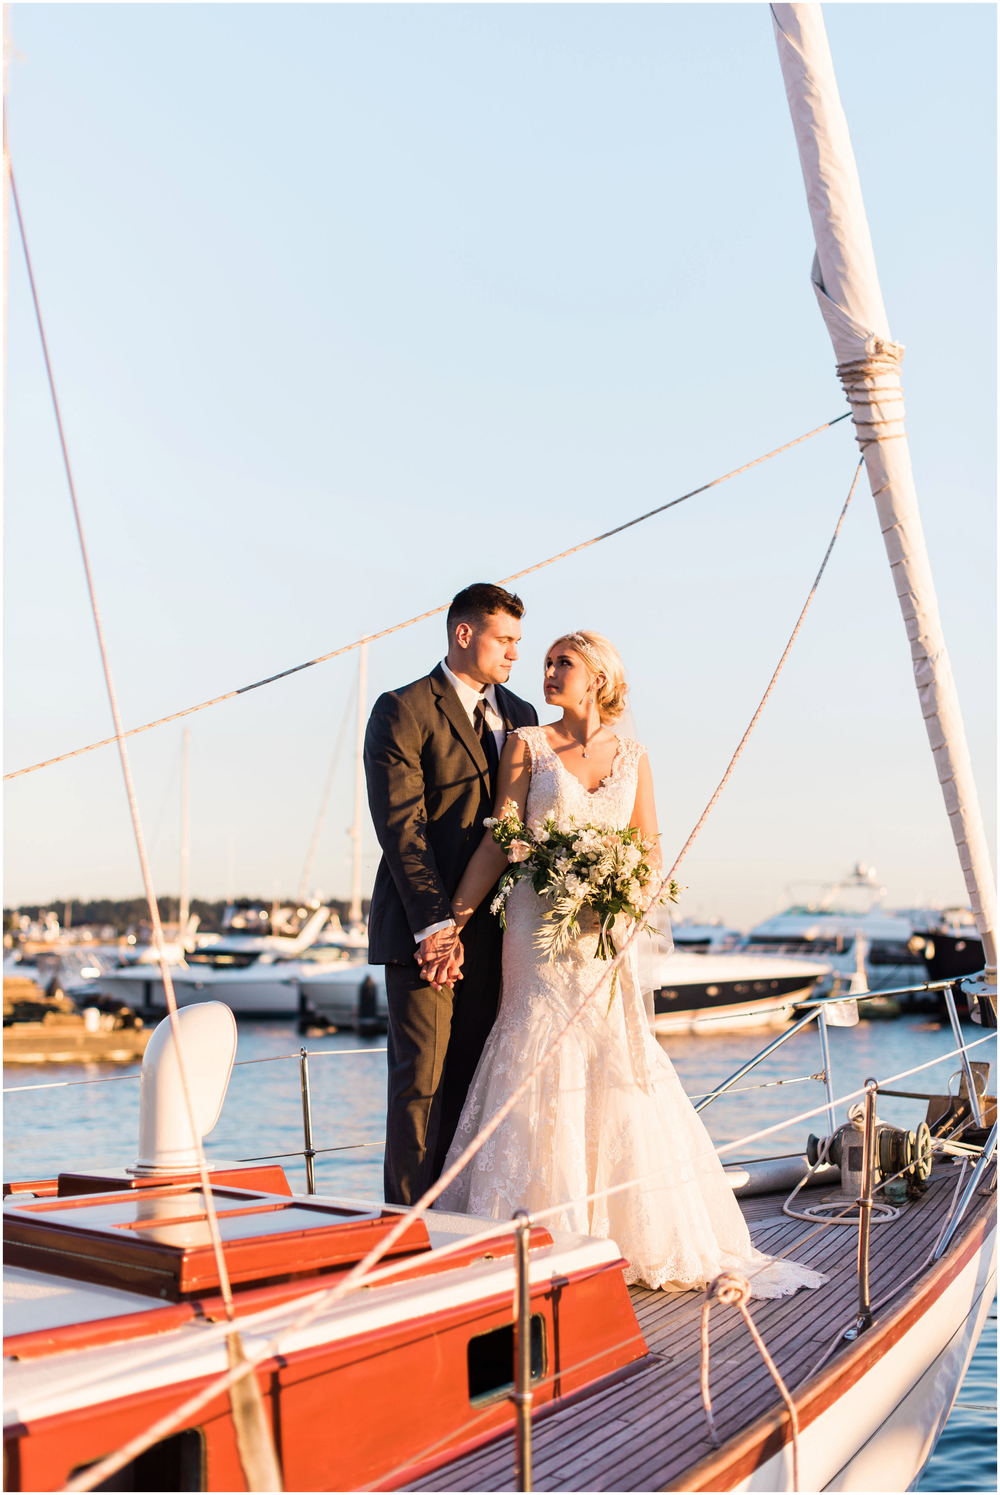 Sail Boat nautical wedding in Seattle Washington in Kirland Mari